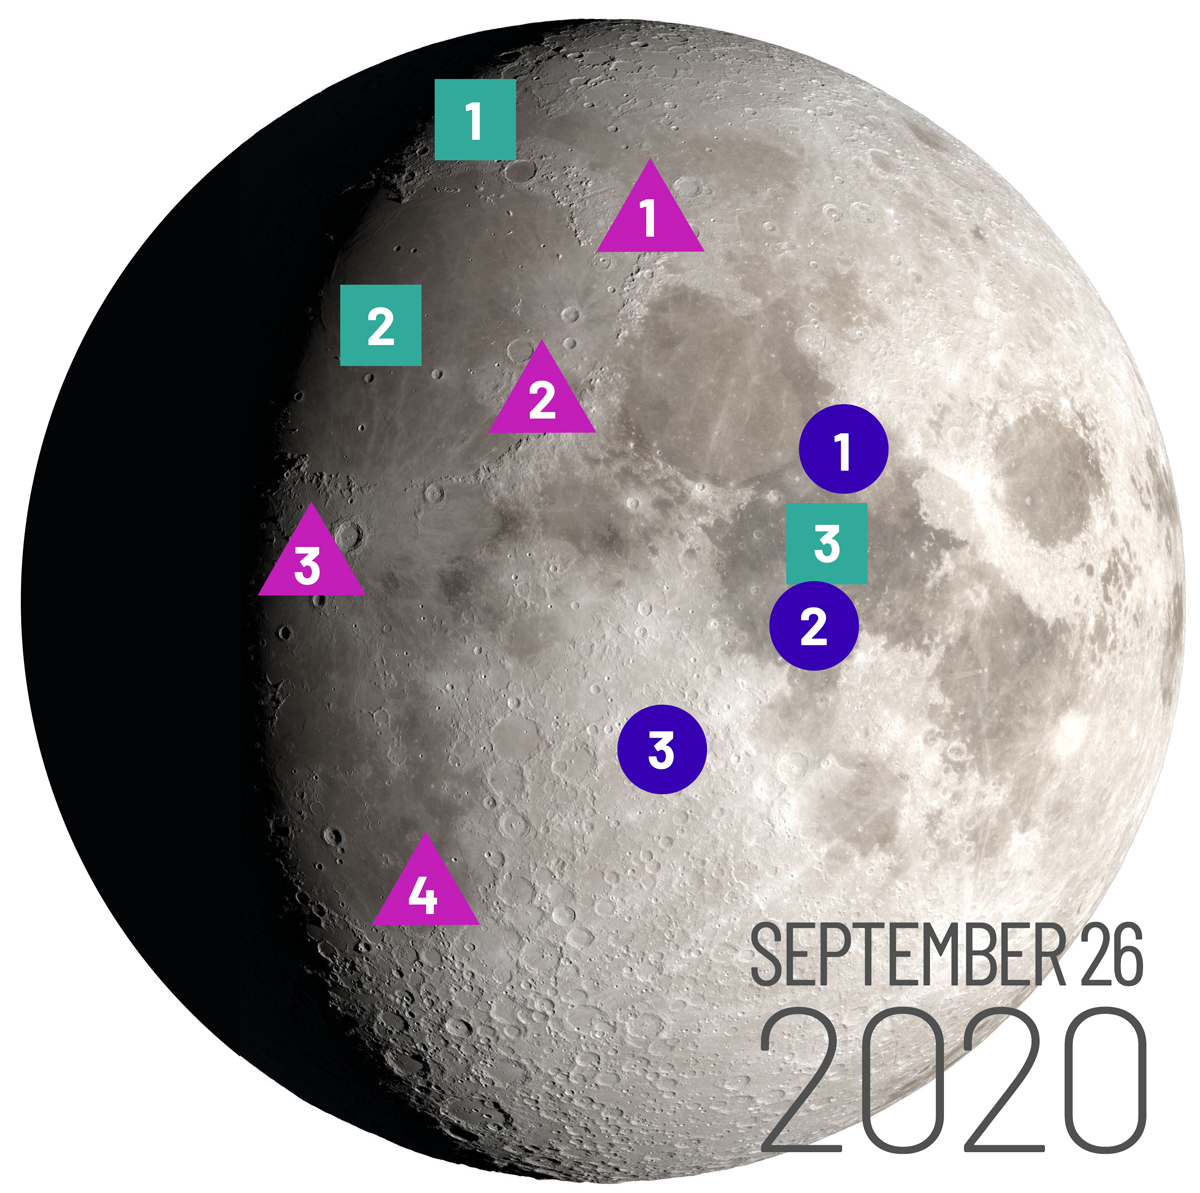 Moon with labels of highlighted features for September 26, 2000